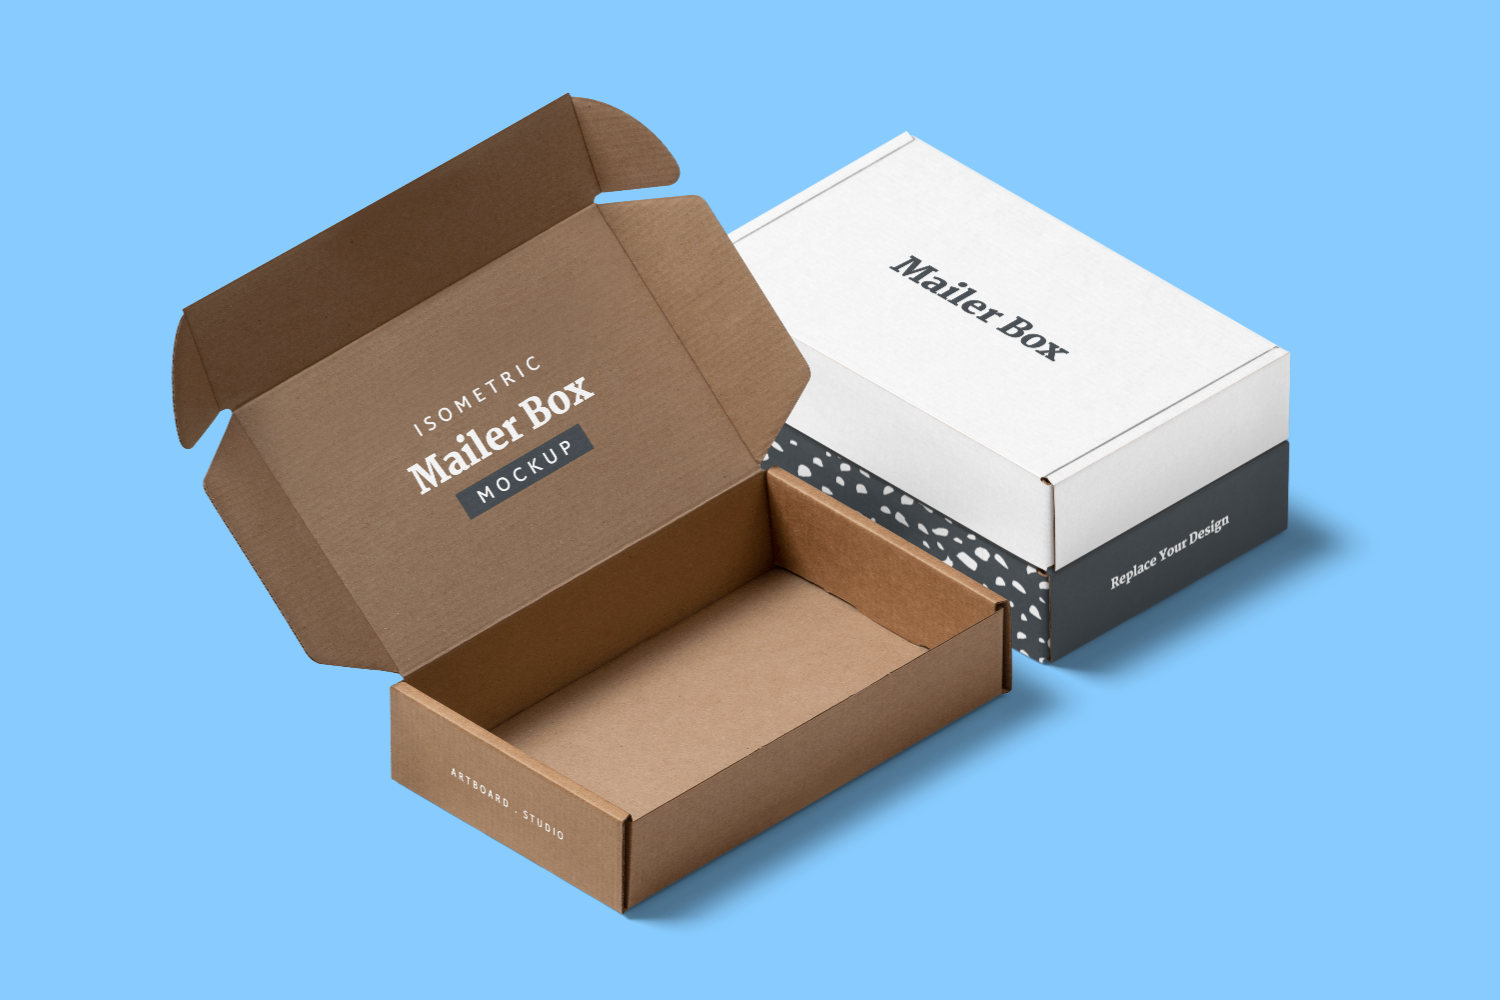 Download Check Out This Free Awesome Mockup Template From Artboard Studio Free Mockup Templates Mailer Box Branding Design